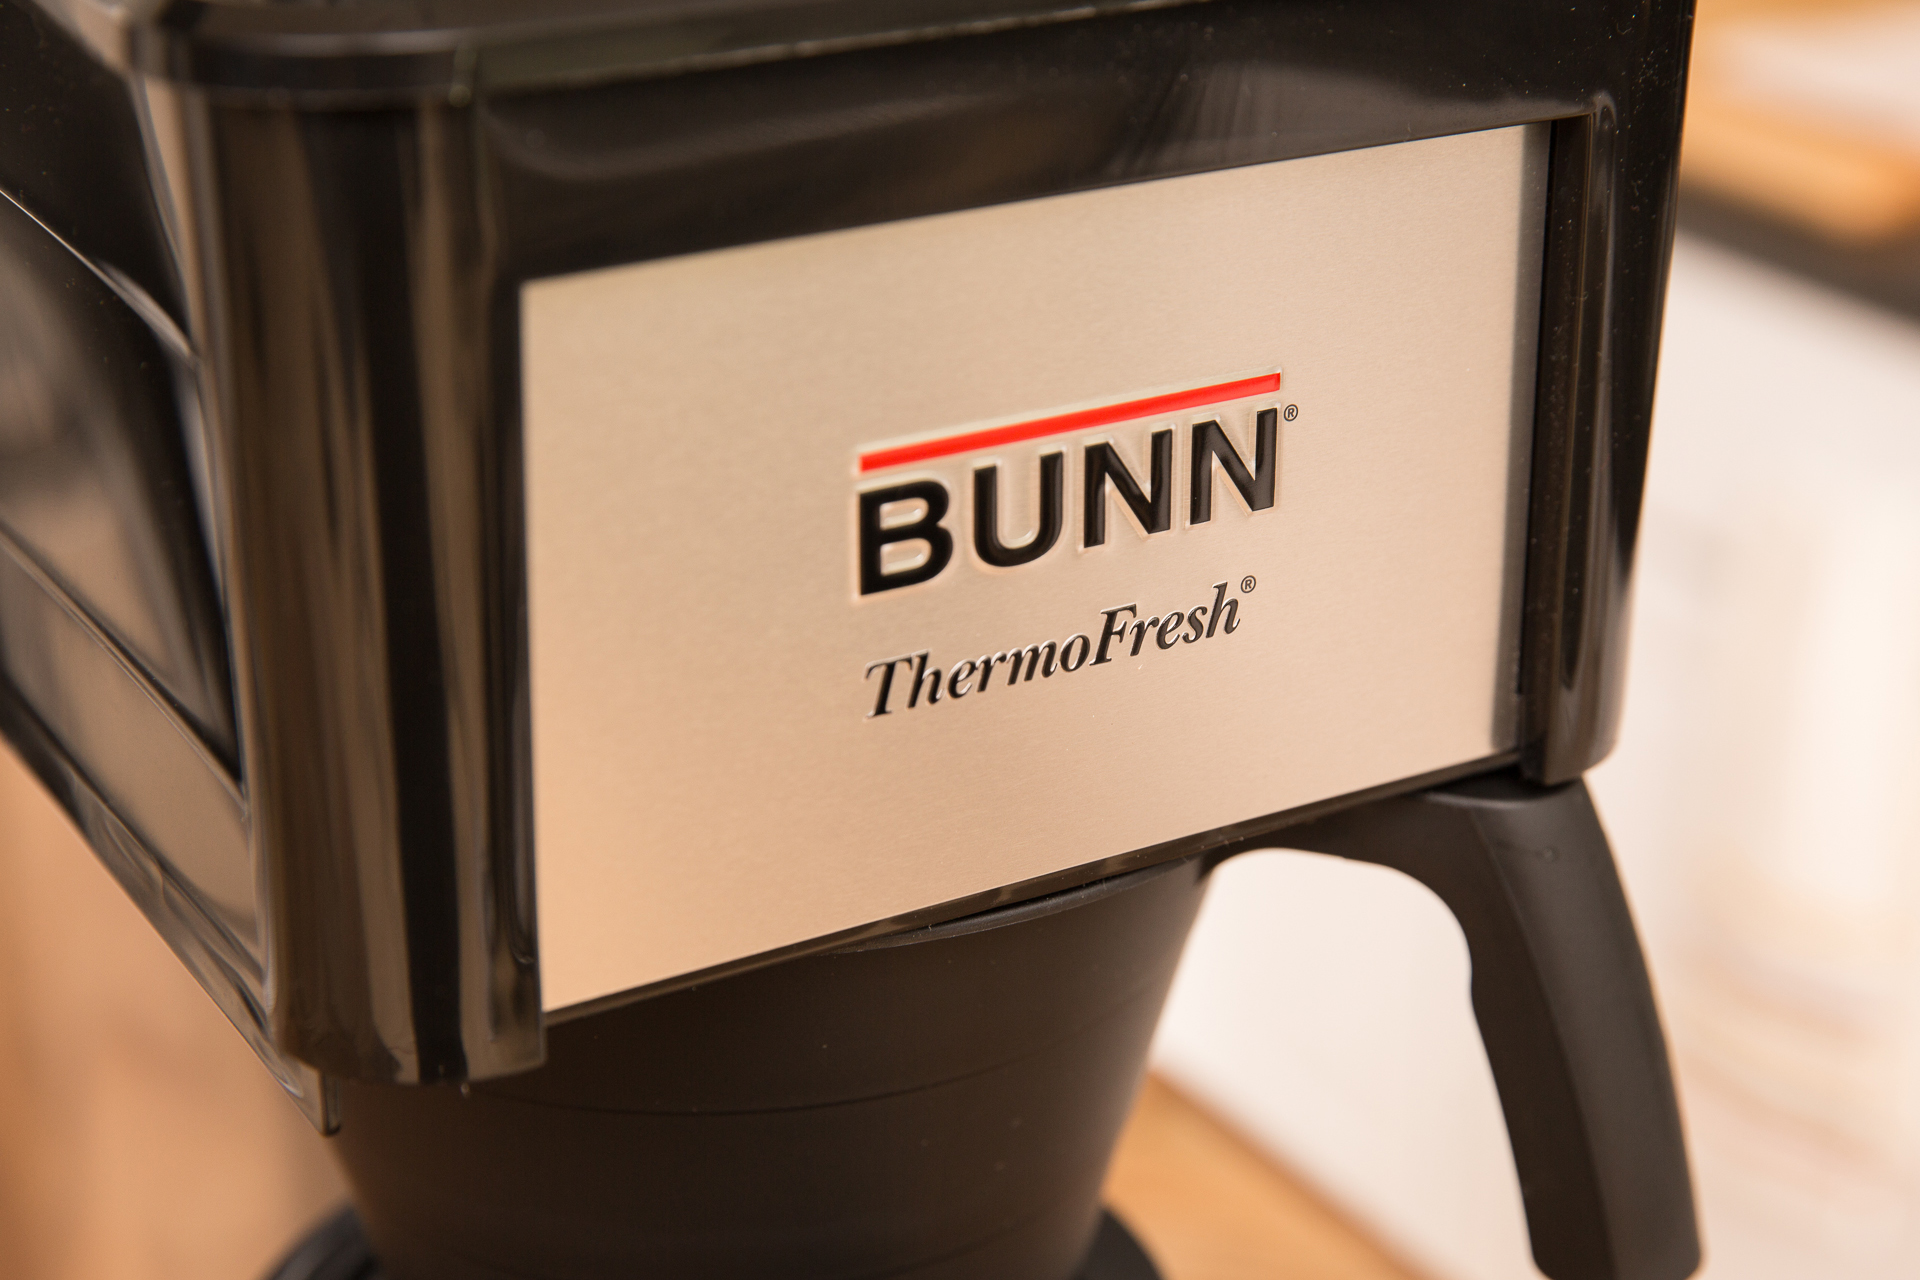 Video: Bunn's Velocity brewer makes delicious coffee incredibly fast